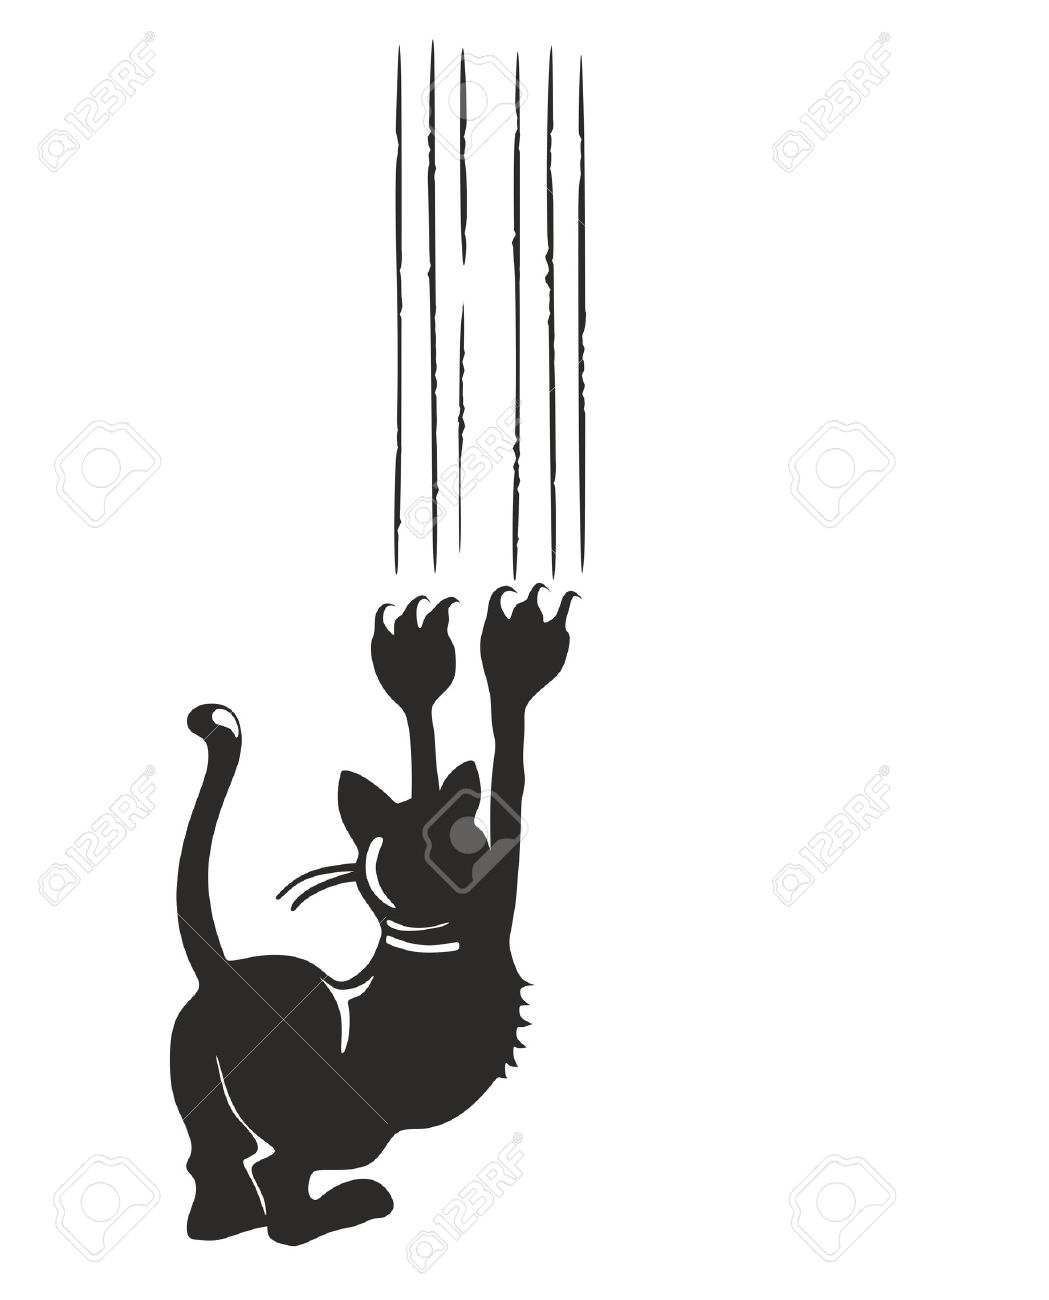 Illustration Of A Black Cat Leaving Claw Marks On A Surface Stock.